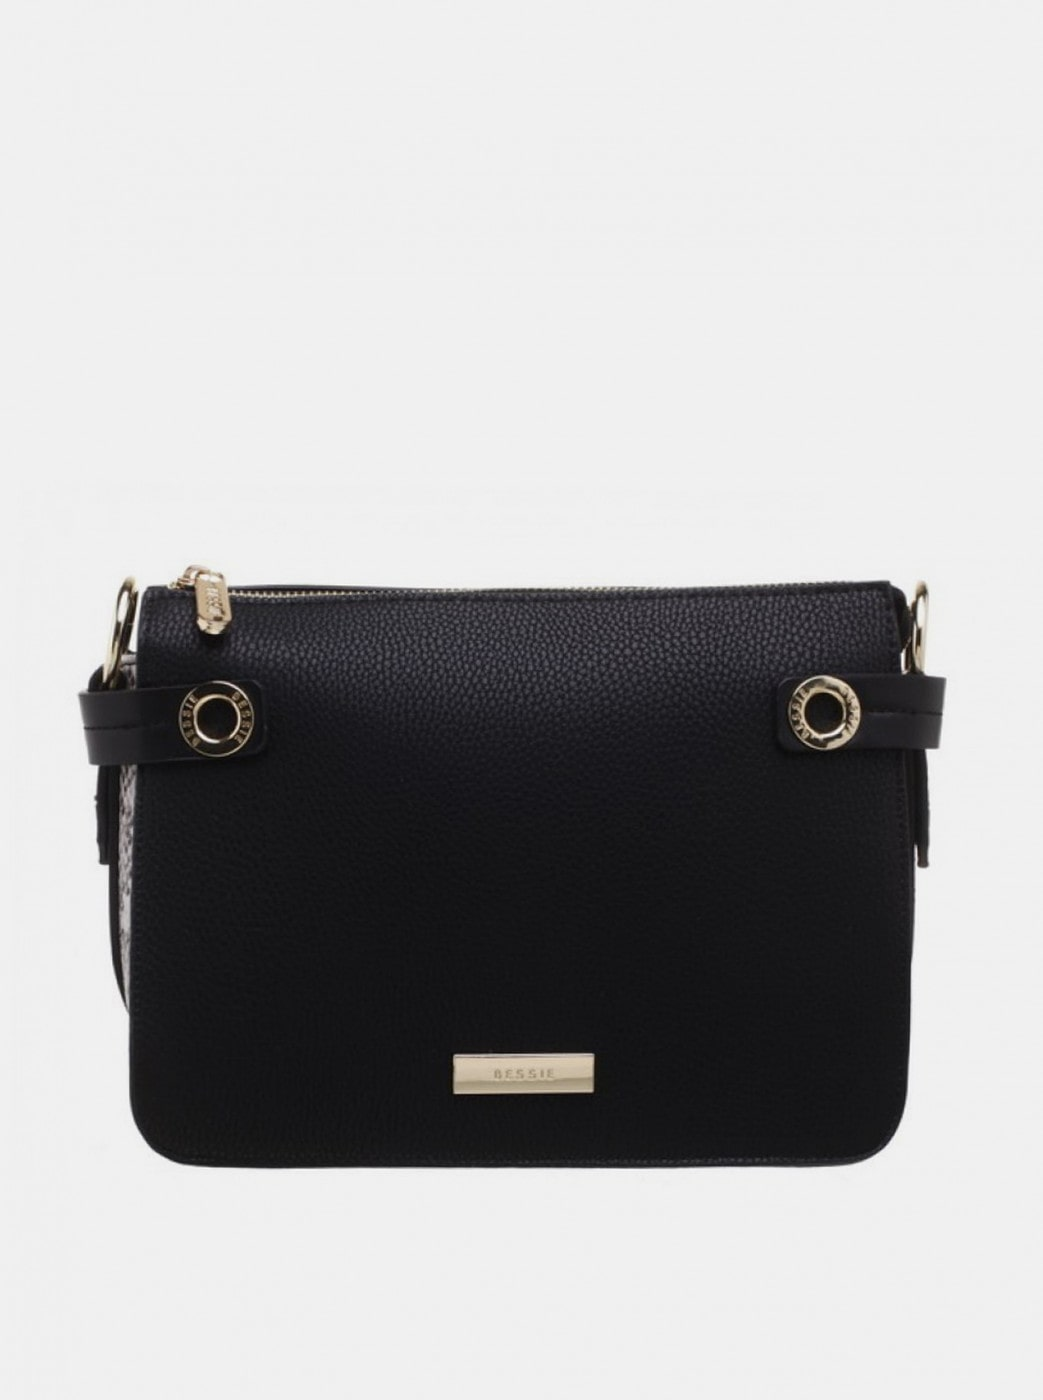 Bessie London Black Crossbody Handbag